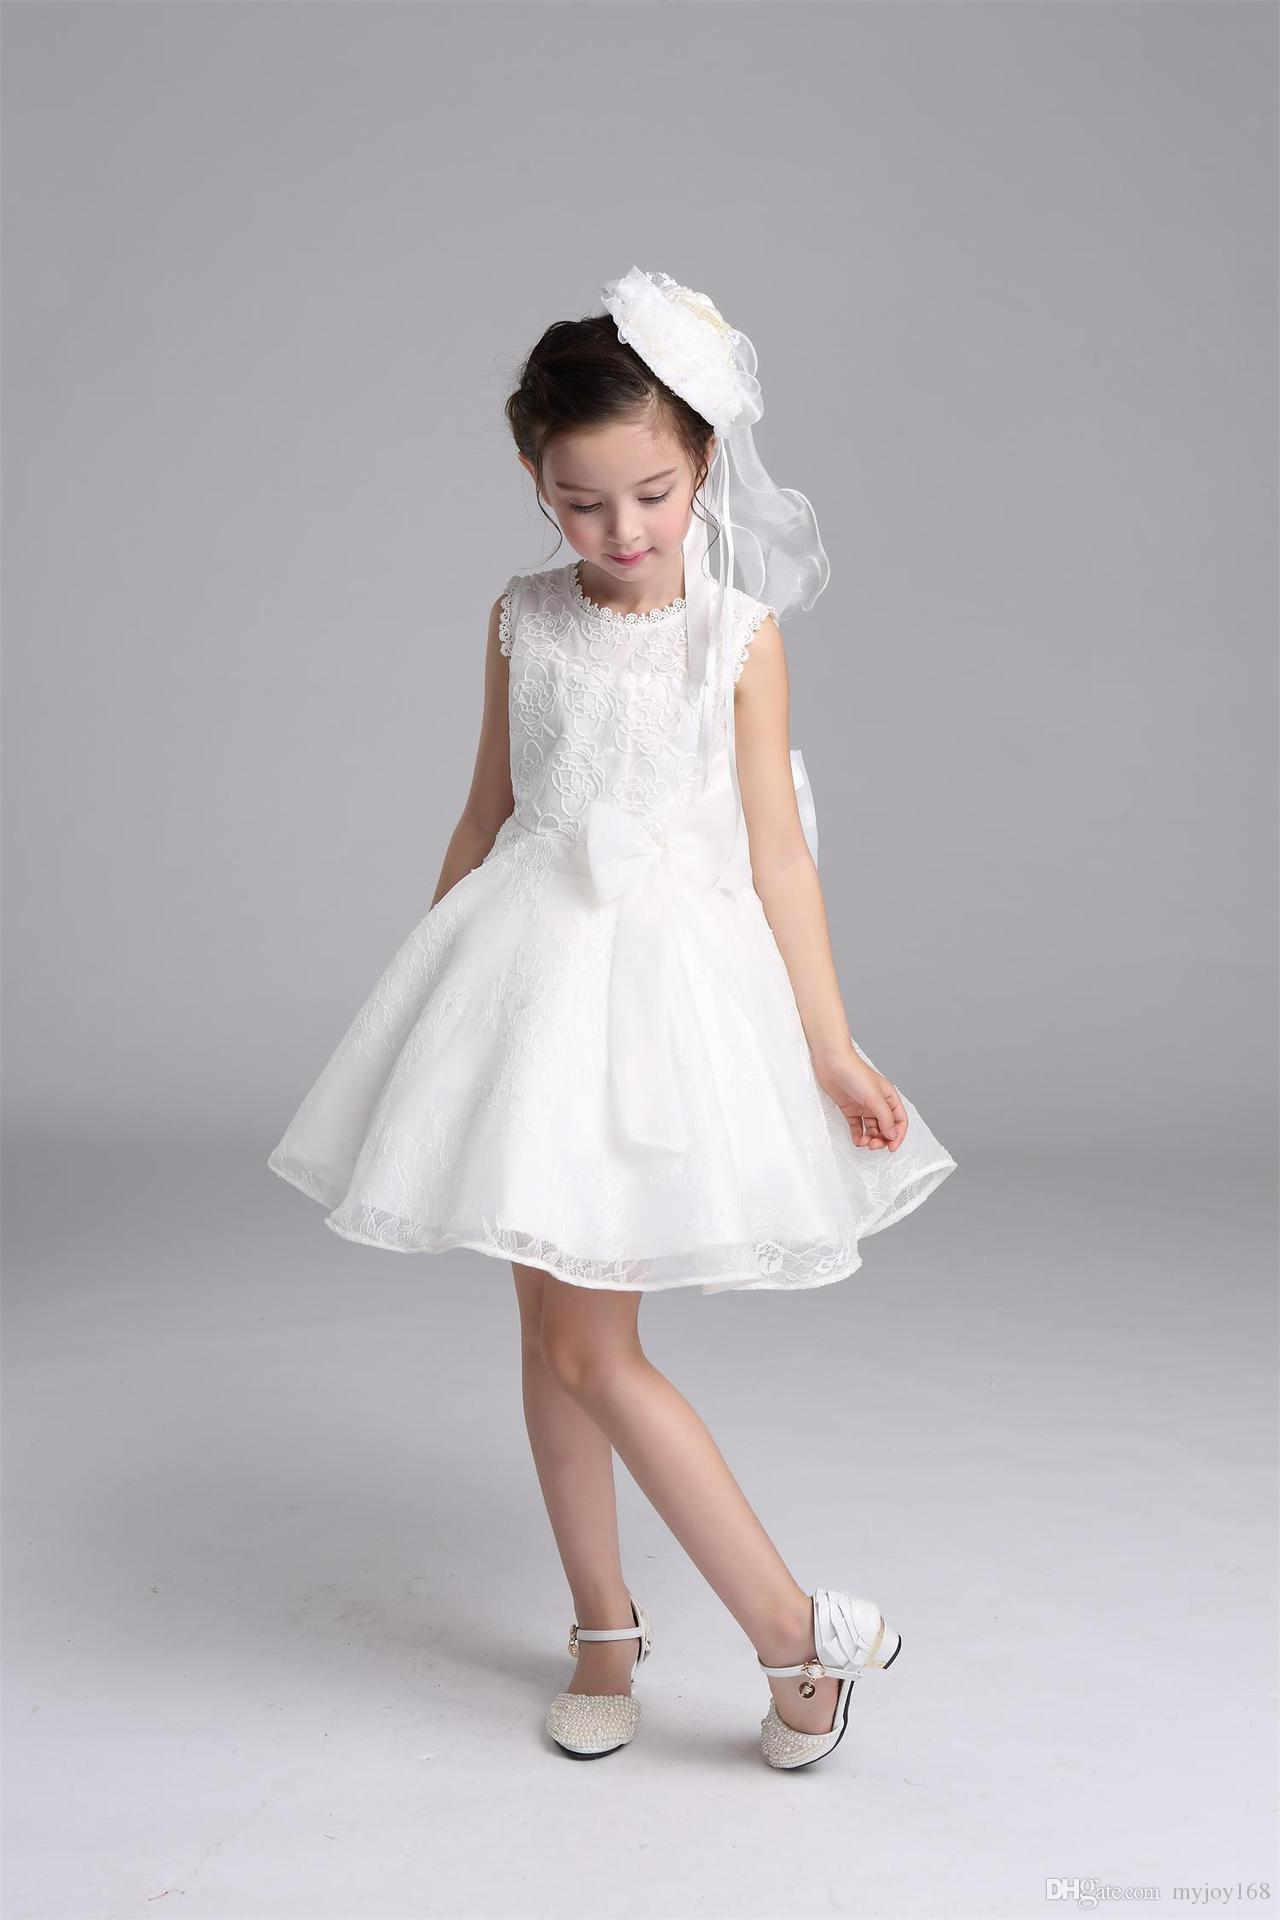 Kids dresses for girls wedding dress princess bridesmaid flower kids dresses for girls wedding dress princess bridesmaid flower girl dresses wedding party dresses baby girl lace dress girls red shoes girls white shoes ombrellifo Images